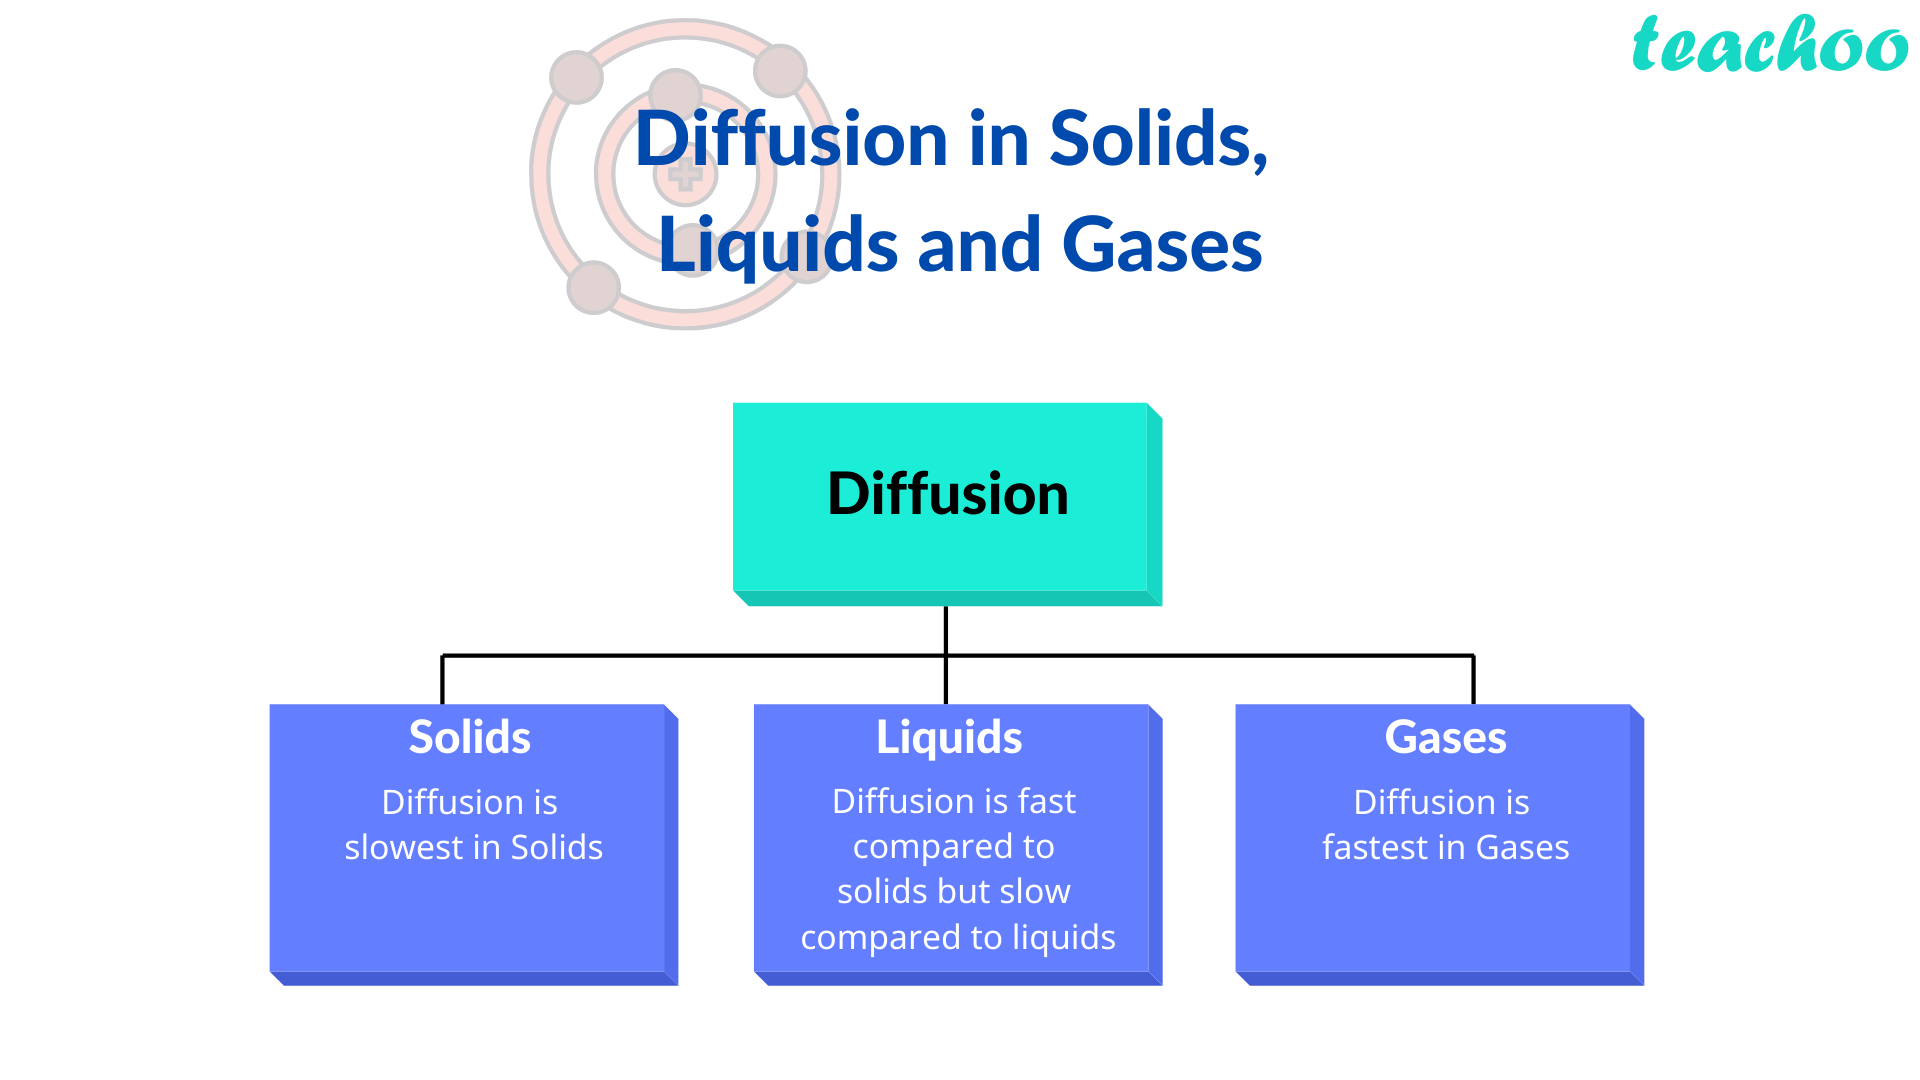 13 - Diffusion in Solids,  Liquids and Gases - Teachoo.png